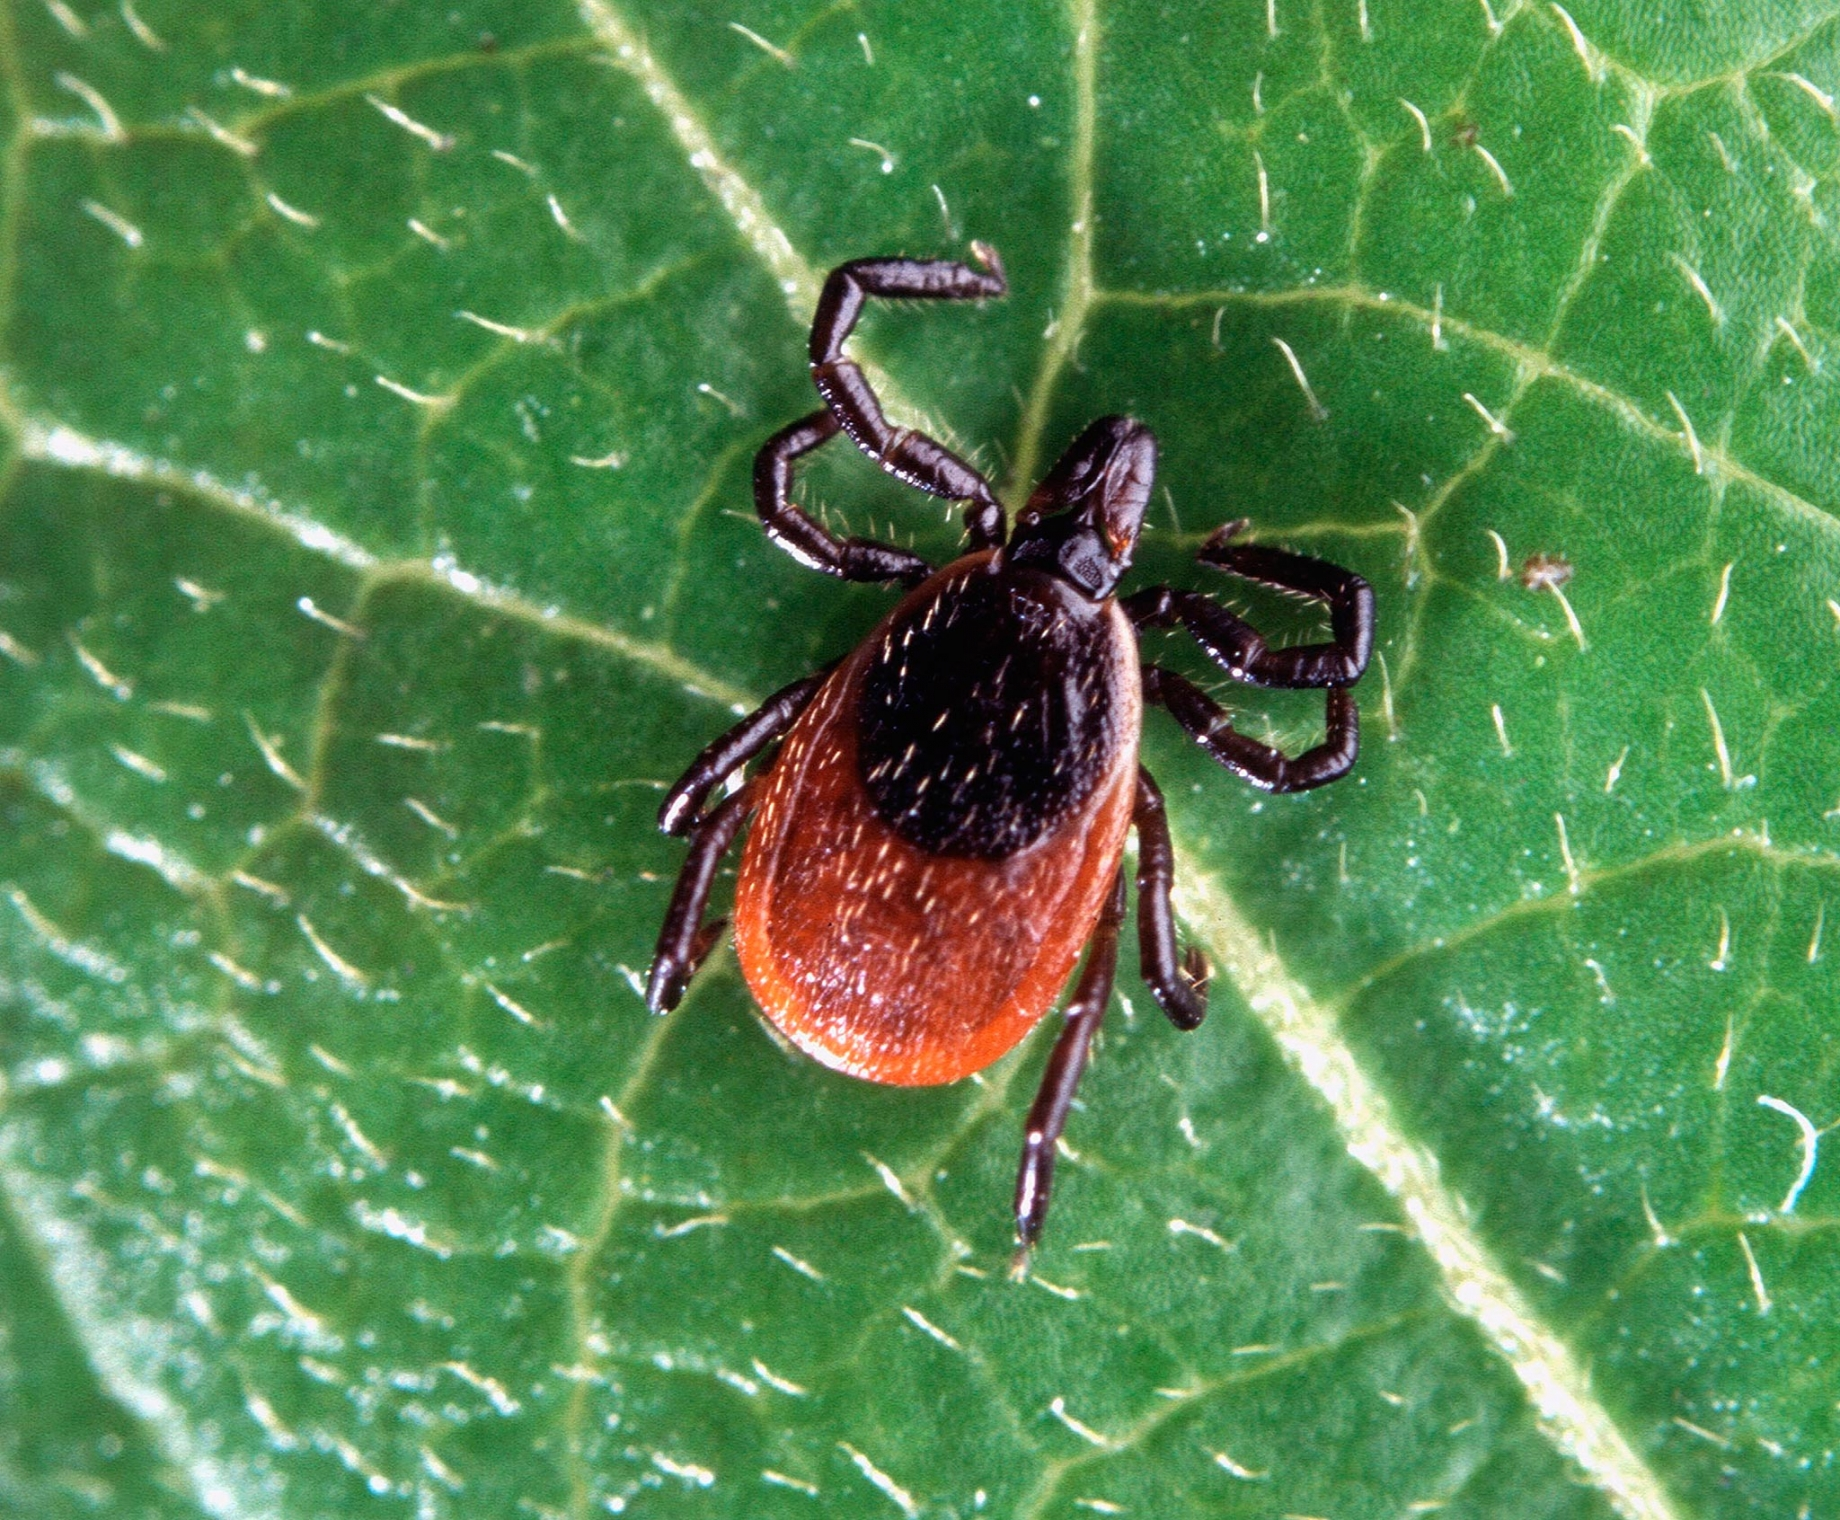 Blacklegged tick